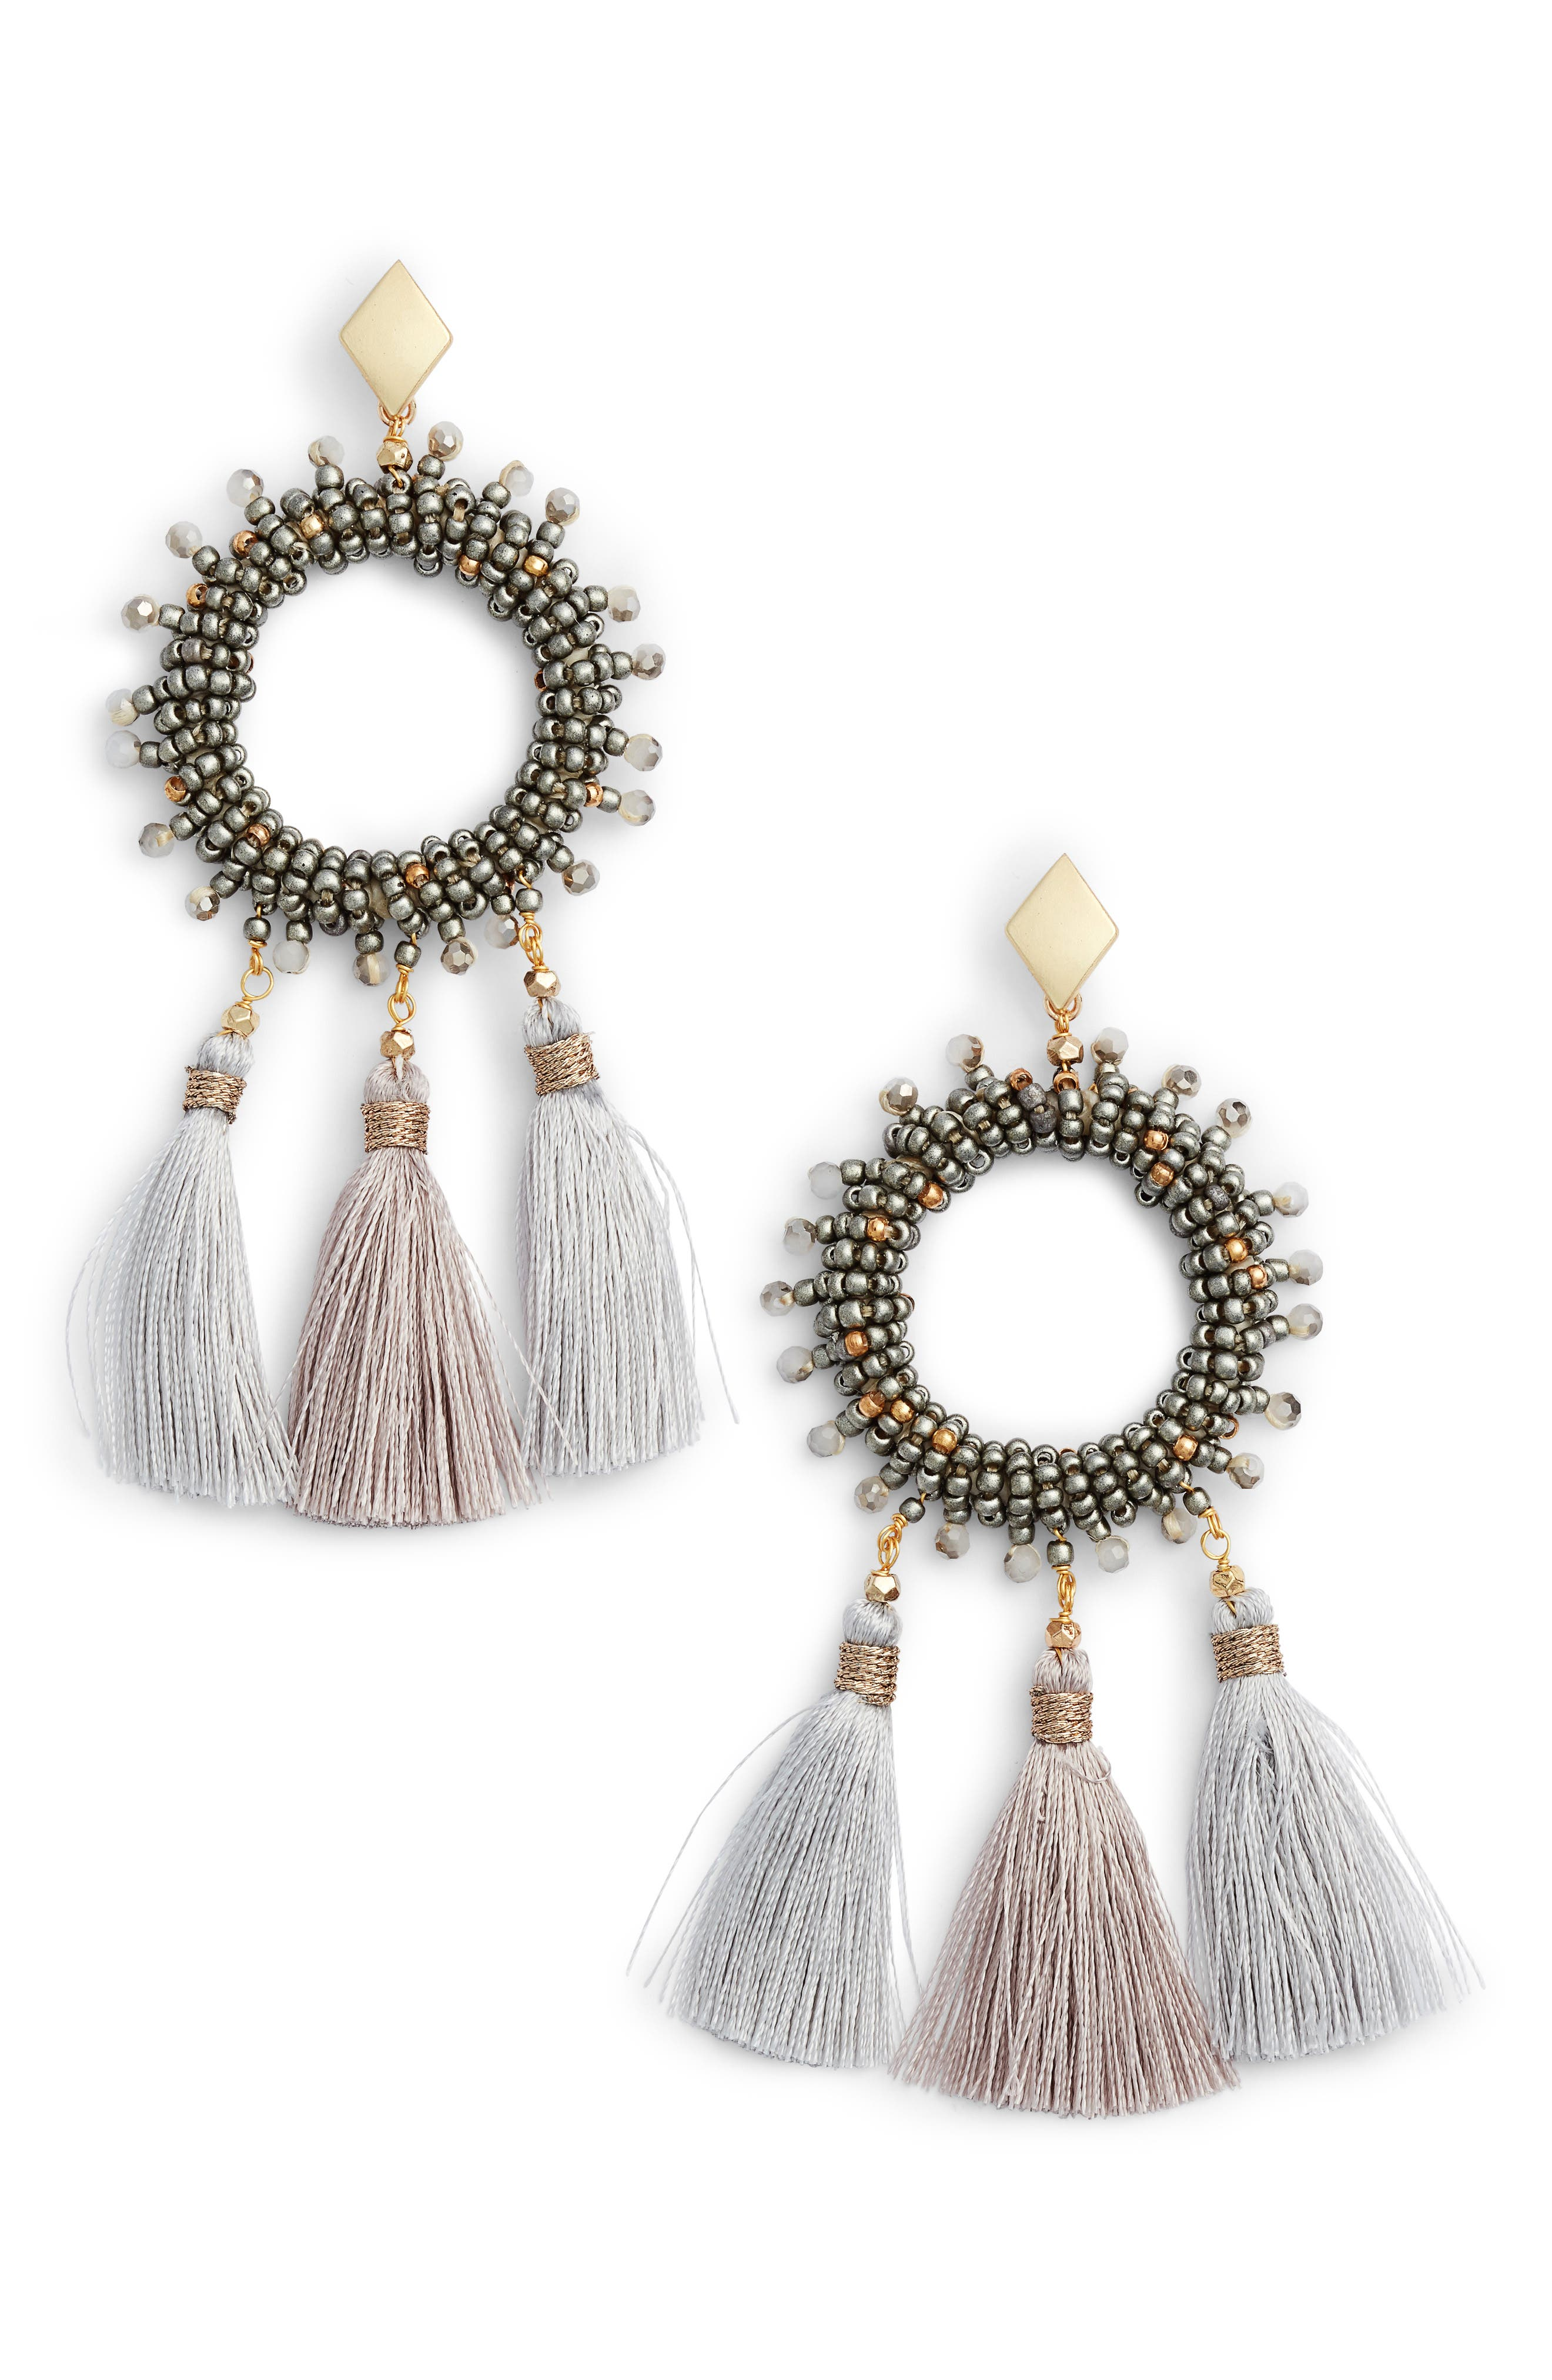 Small Tassel Drop Earrings,                             Main thumbnail 1, color,                             020